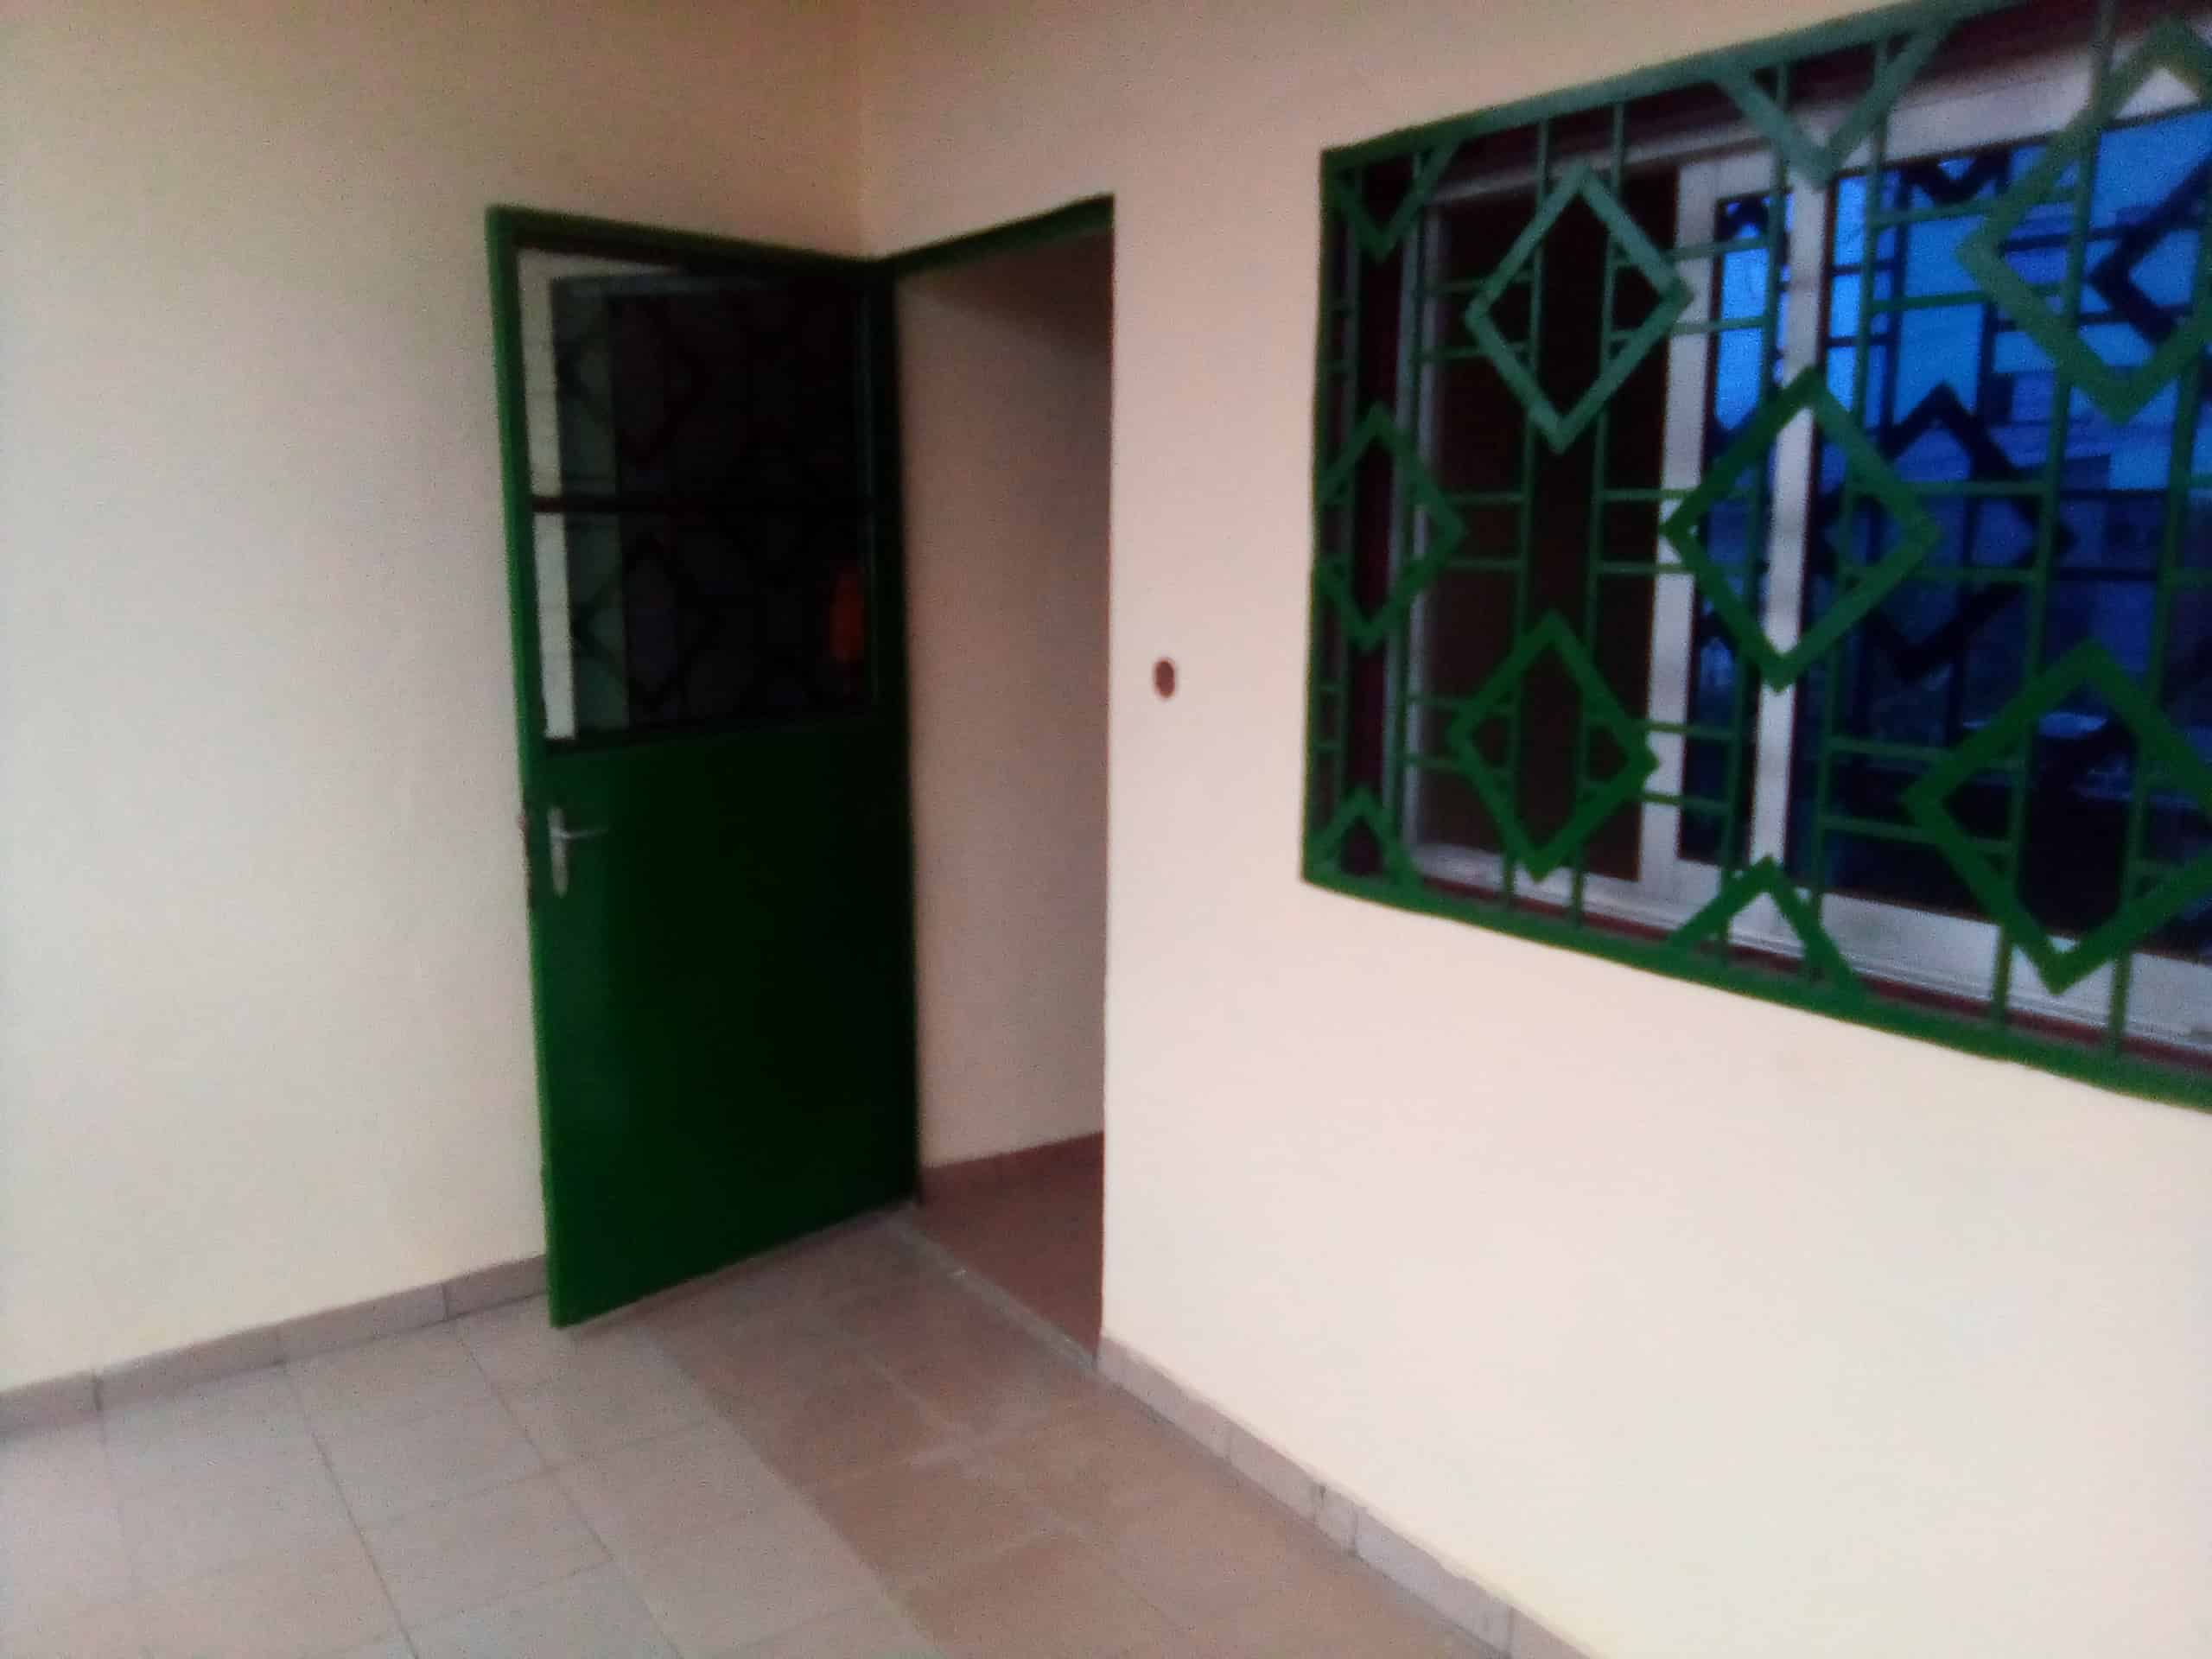 Apartment to rent - Douala, Makepe, BELAVIE - 1 living room(s), 2 bedroom(s), 1 bathroom(s) - 85 000 FCFA / month